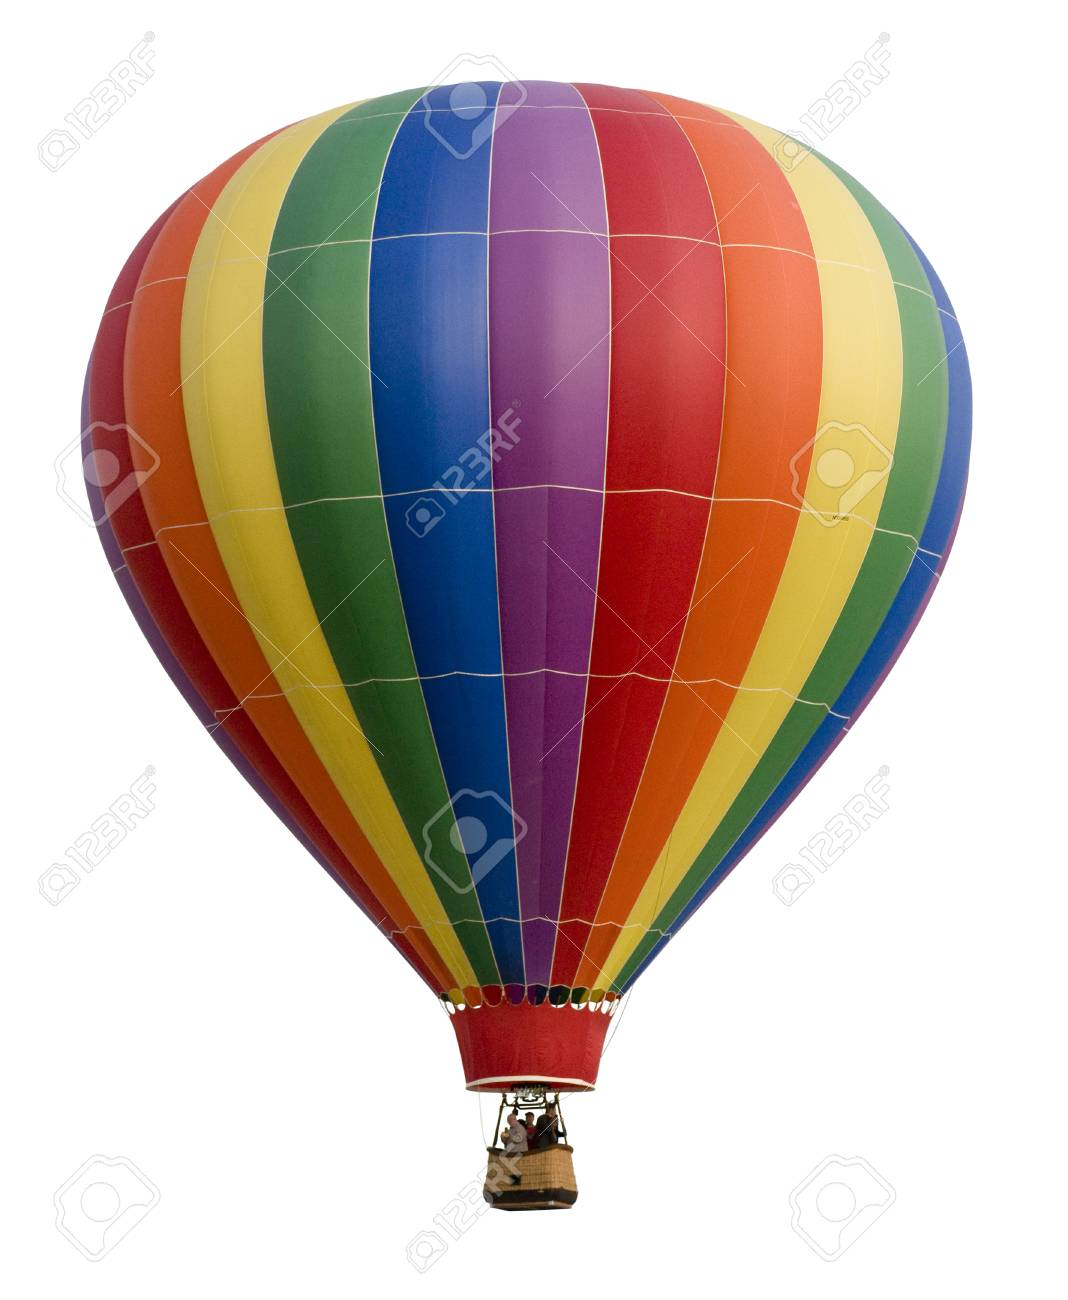 - Colorful Hot Air Balloon Against White Stock Photo, Picture And